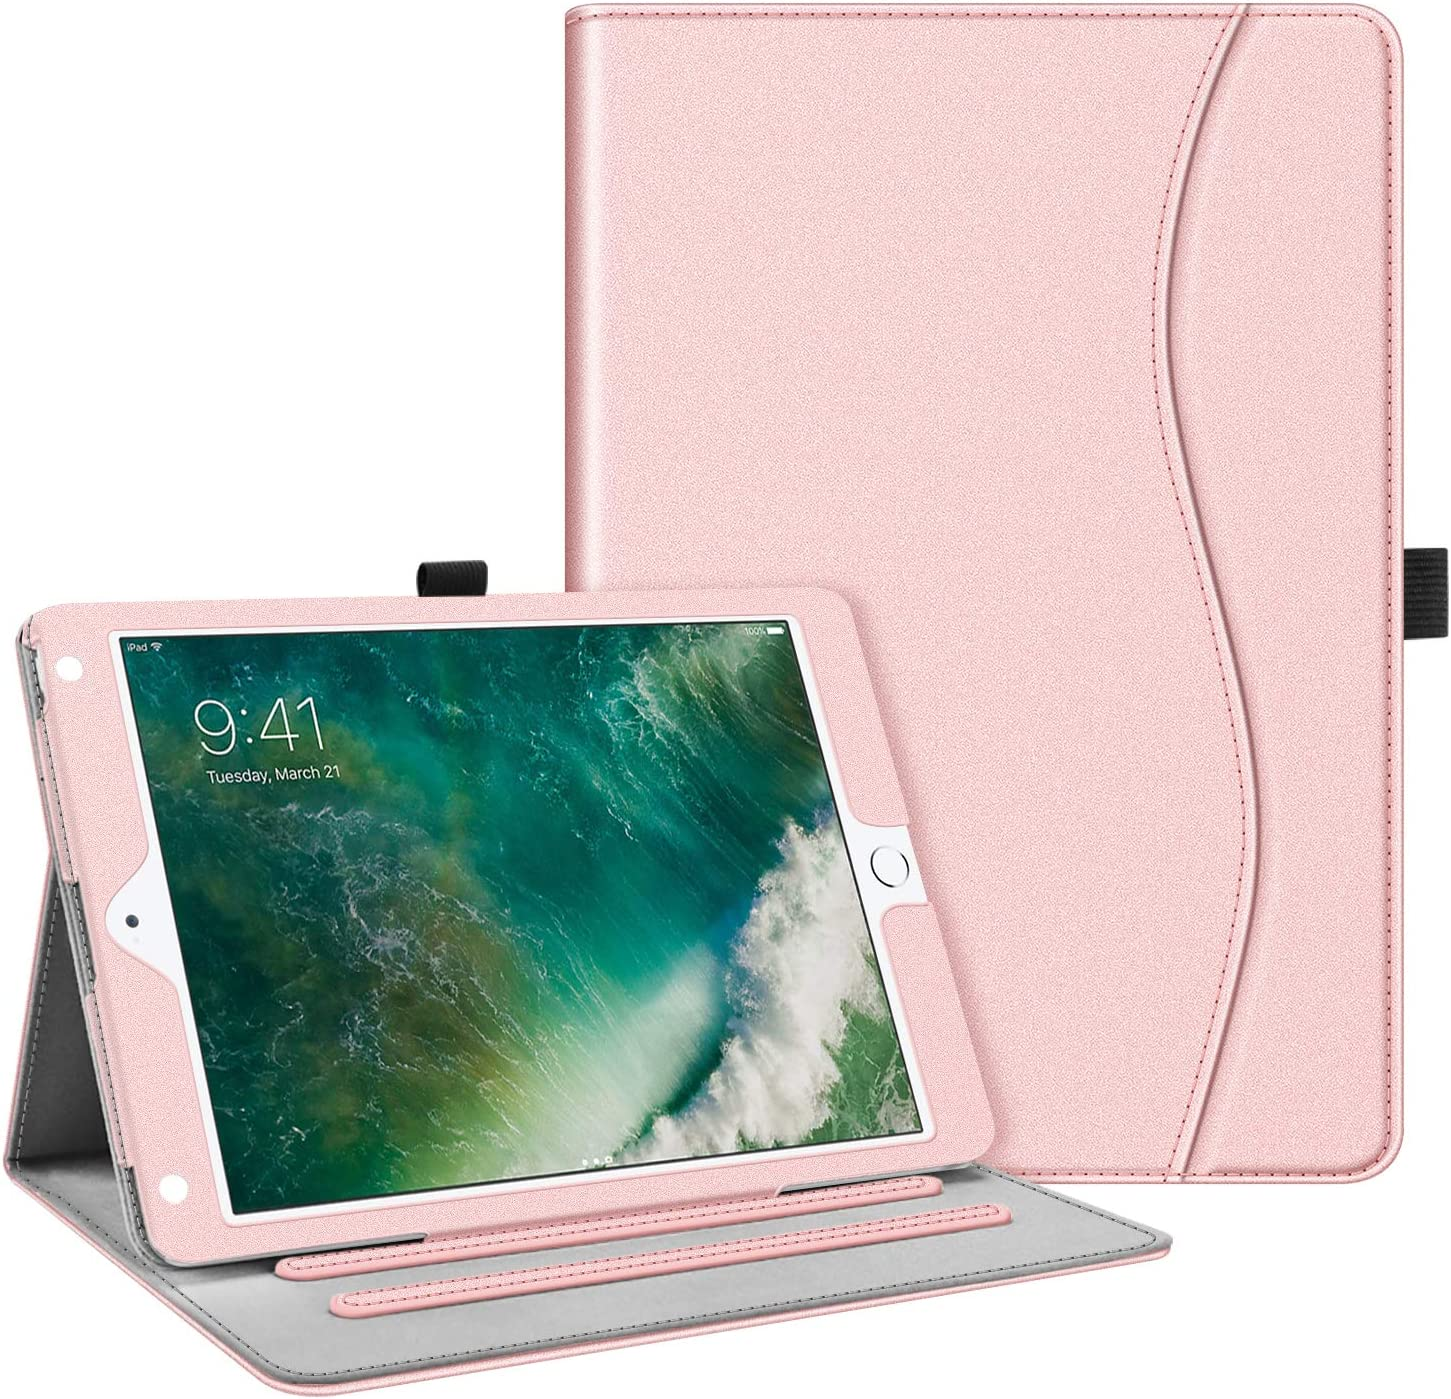 Fintie Case for iPad 9.7 2018 2017 / iPad Air 2 / iPad Air - [Corner Protection] Multi-Angle Viewing Folio Cover w/Pocket, Auto Wake/Sleep for iPad 6th / 5th Gen, iPad Air 1/2, Rose Gold